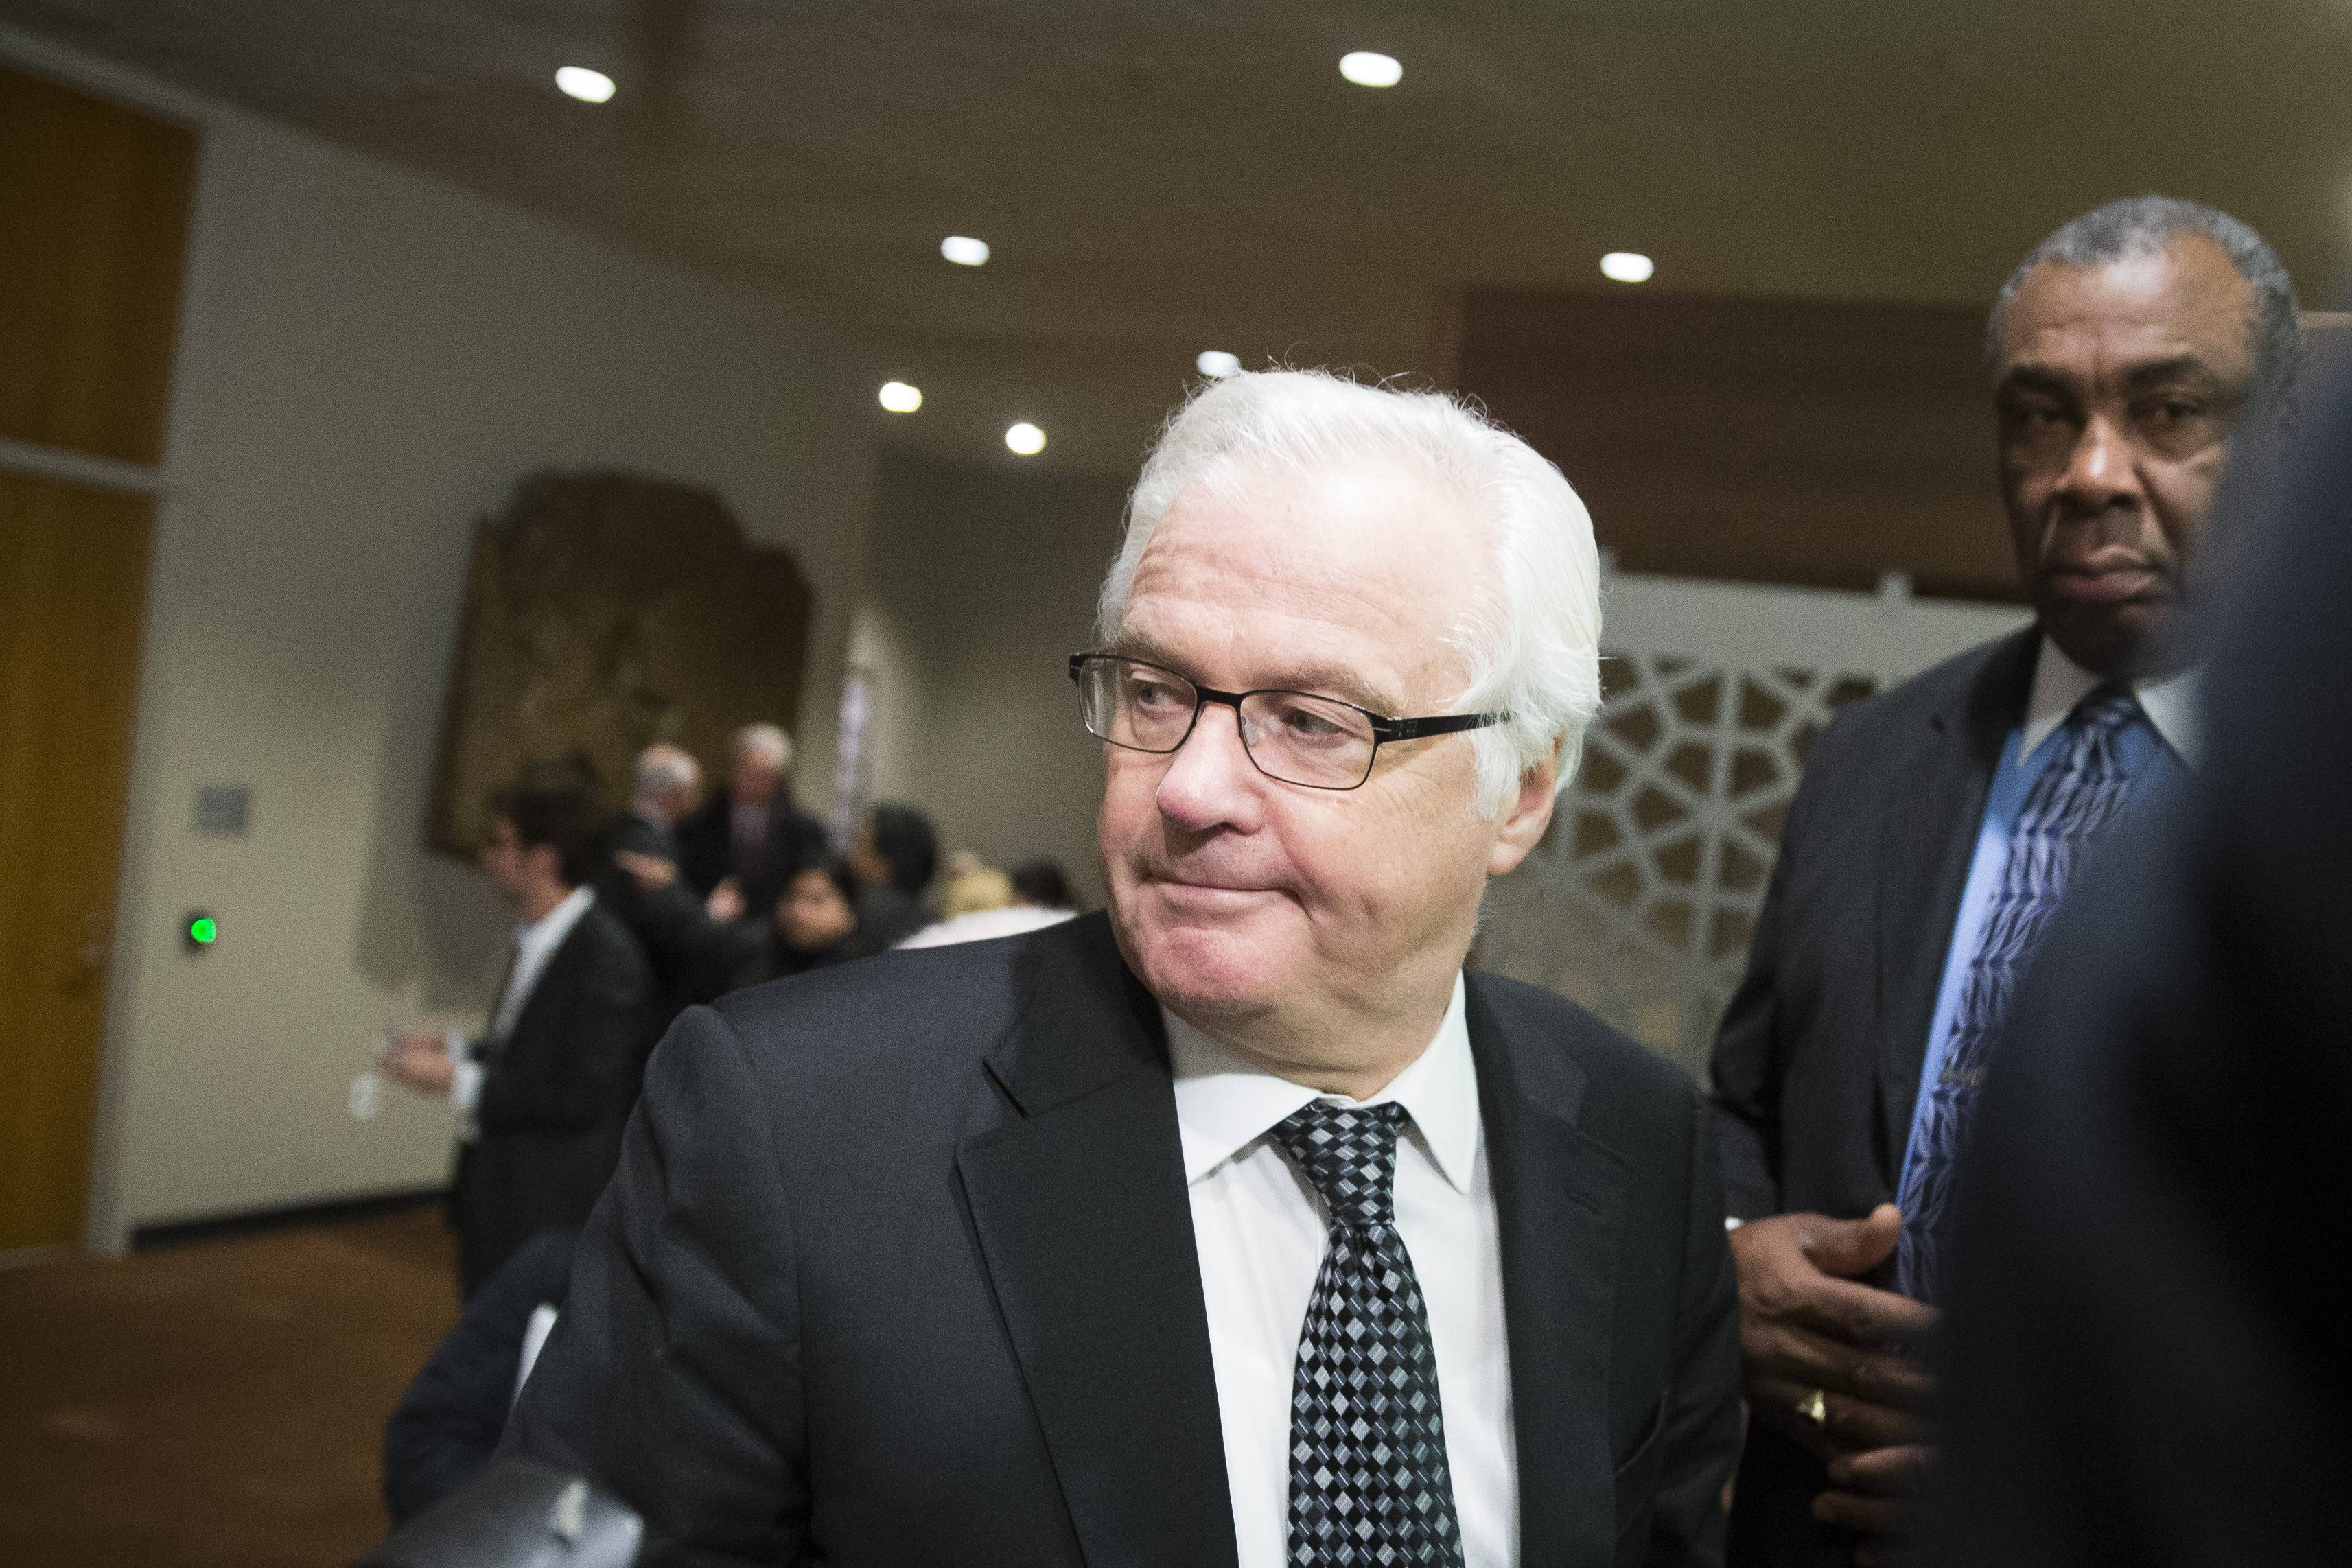 Russia's U.N. Ambassador Vitaly Churkin heads toward the exit Saturday following an U.N. Security Council meeting.